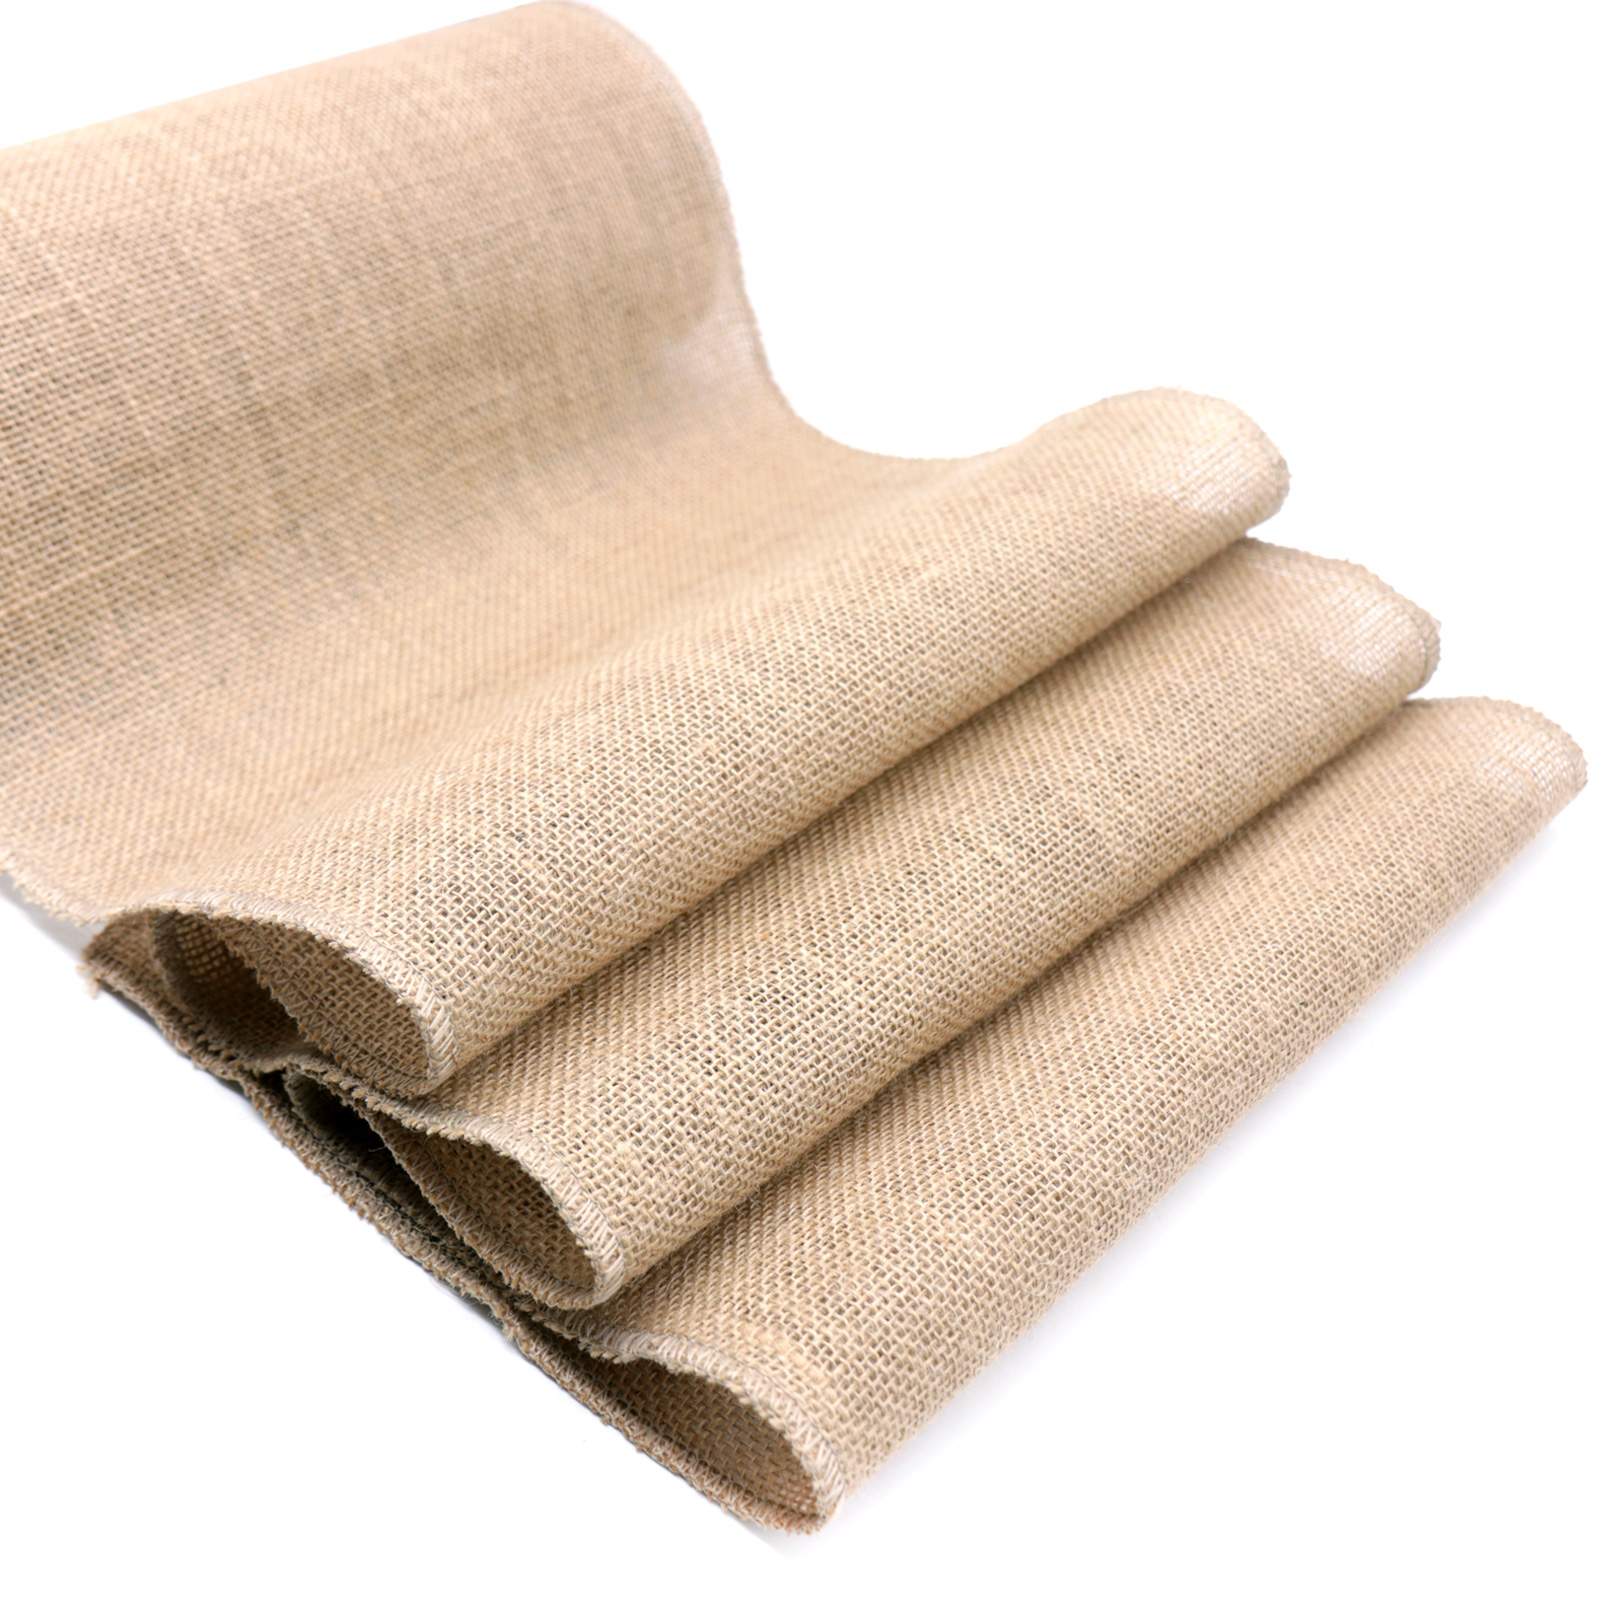 30cmx10m Natural Hessian Jute Burlap Table Runner Table Decoration For Wedding Event Home Party Background Photo Props Supply Pakistan